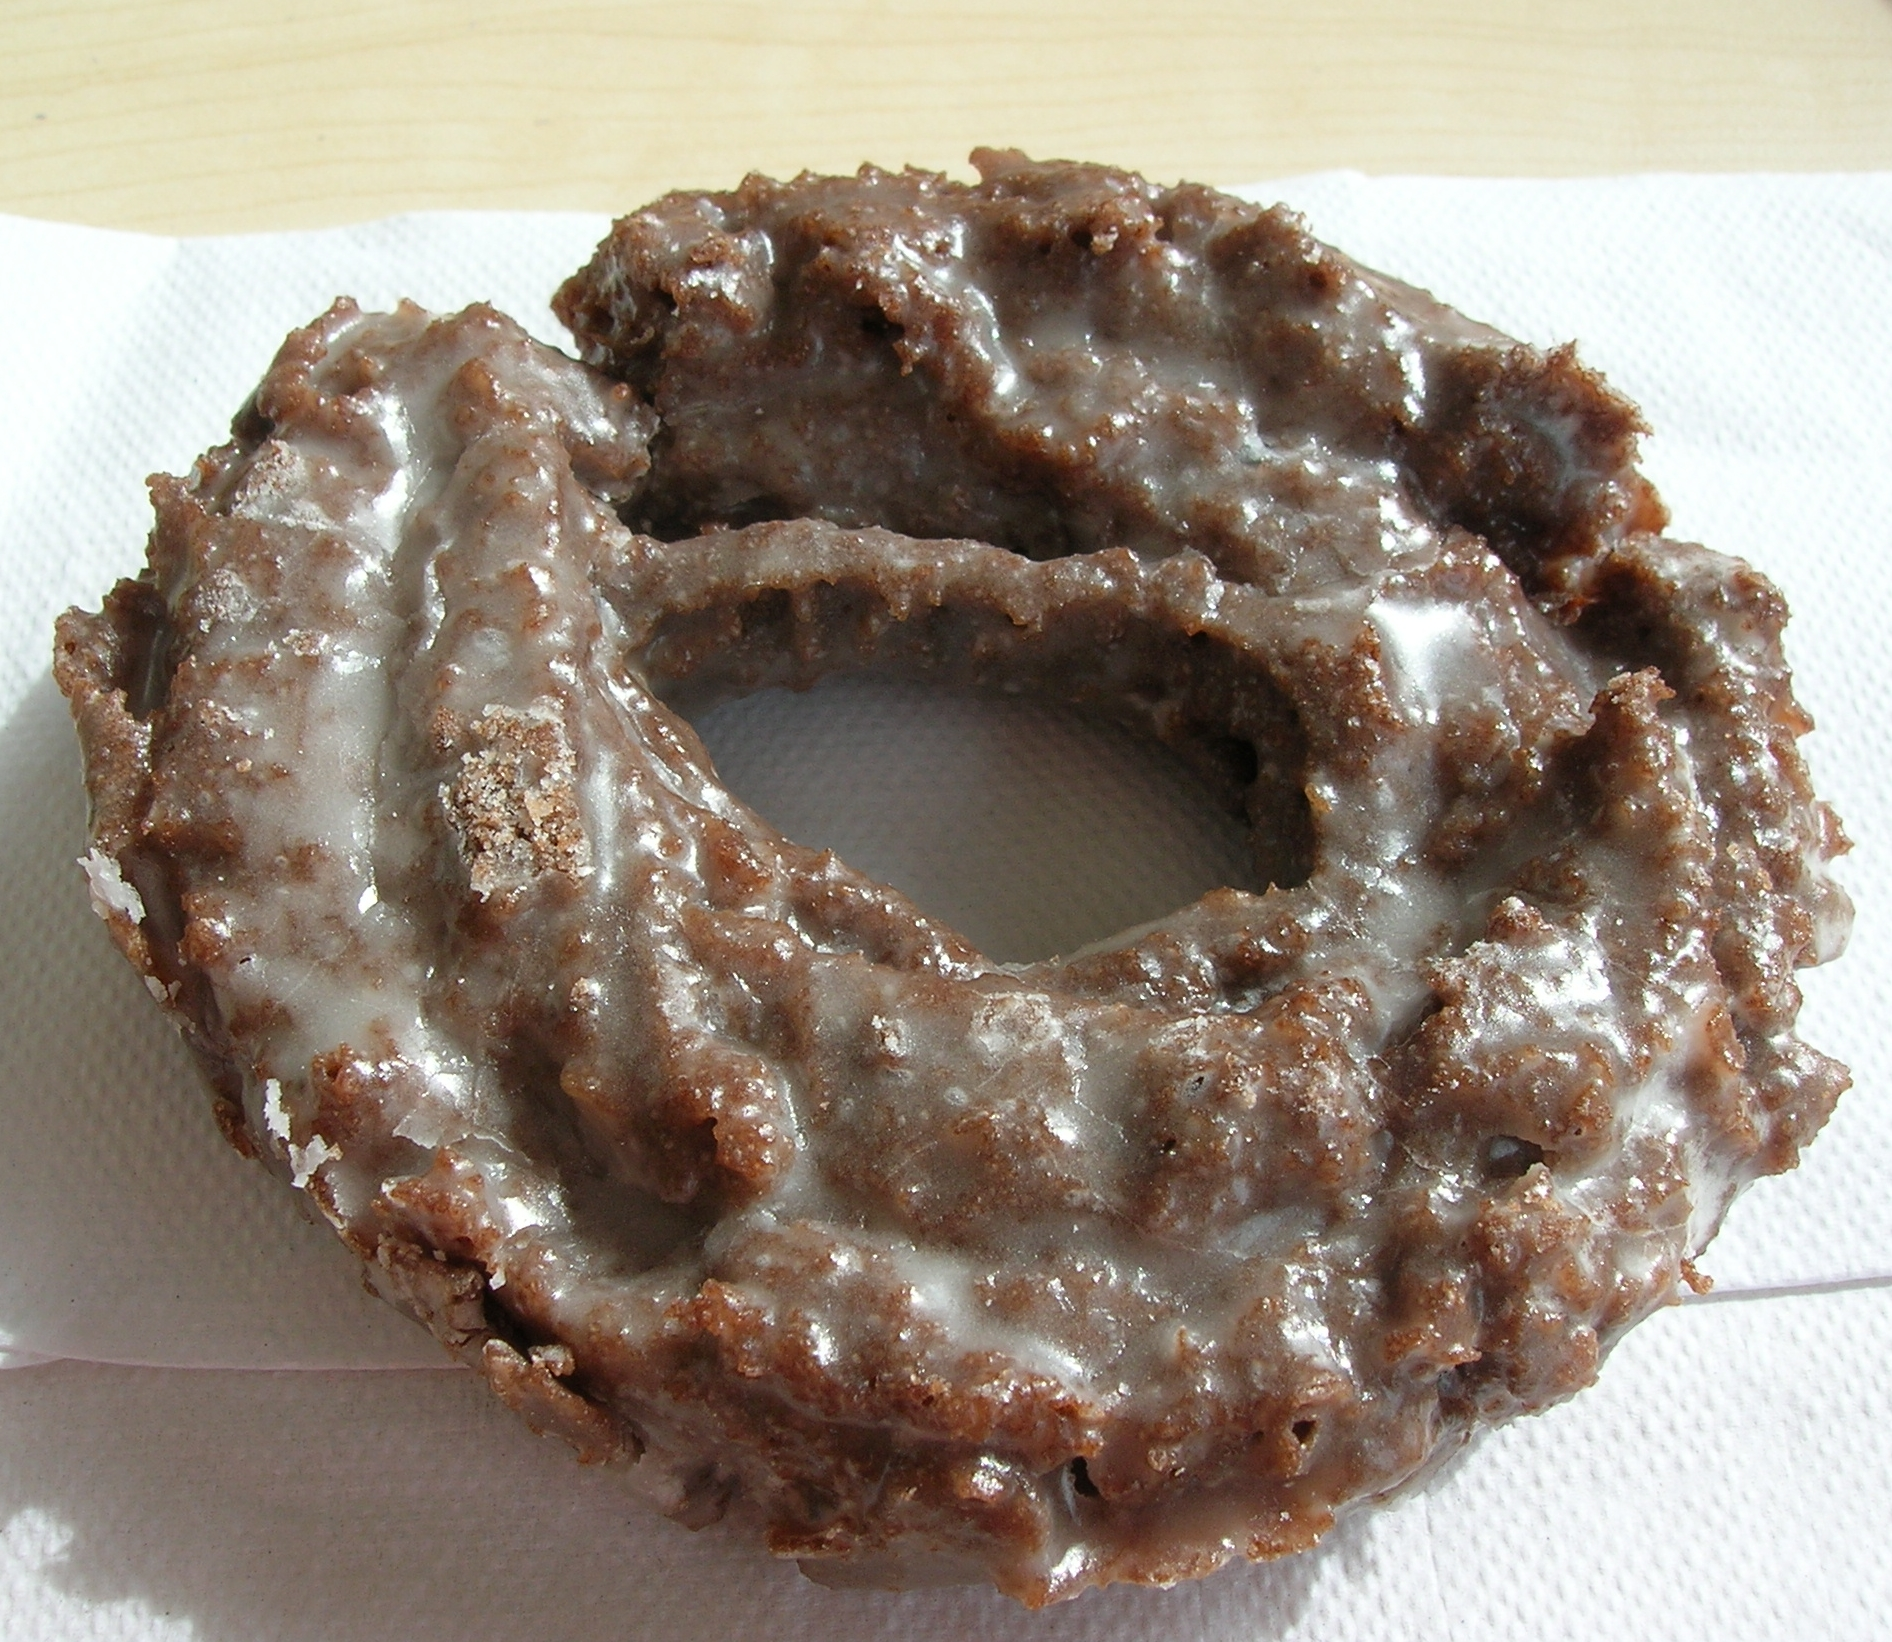 Sour Cream Doughnut Wikipedia